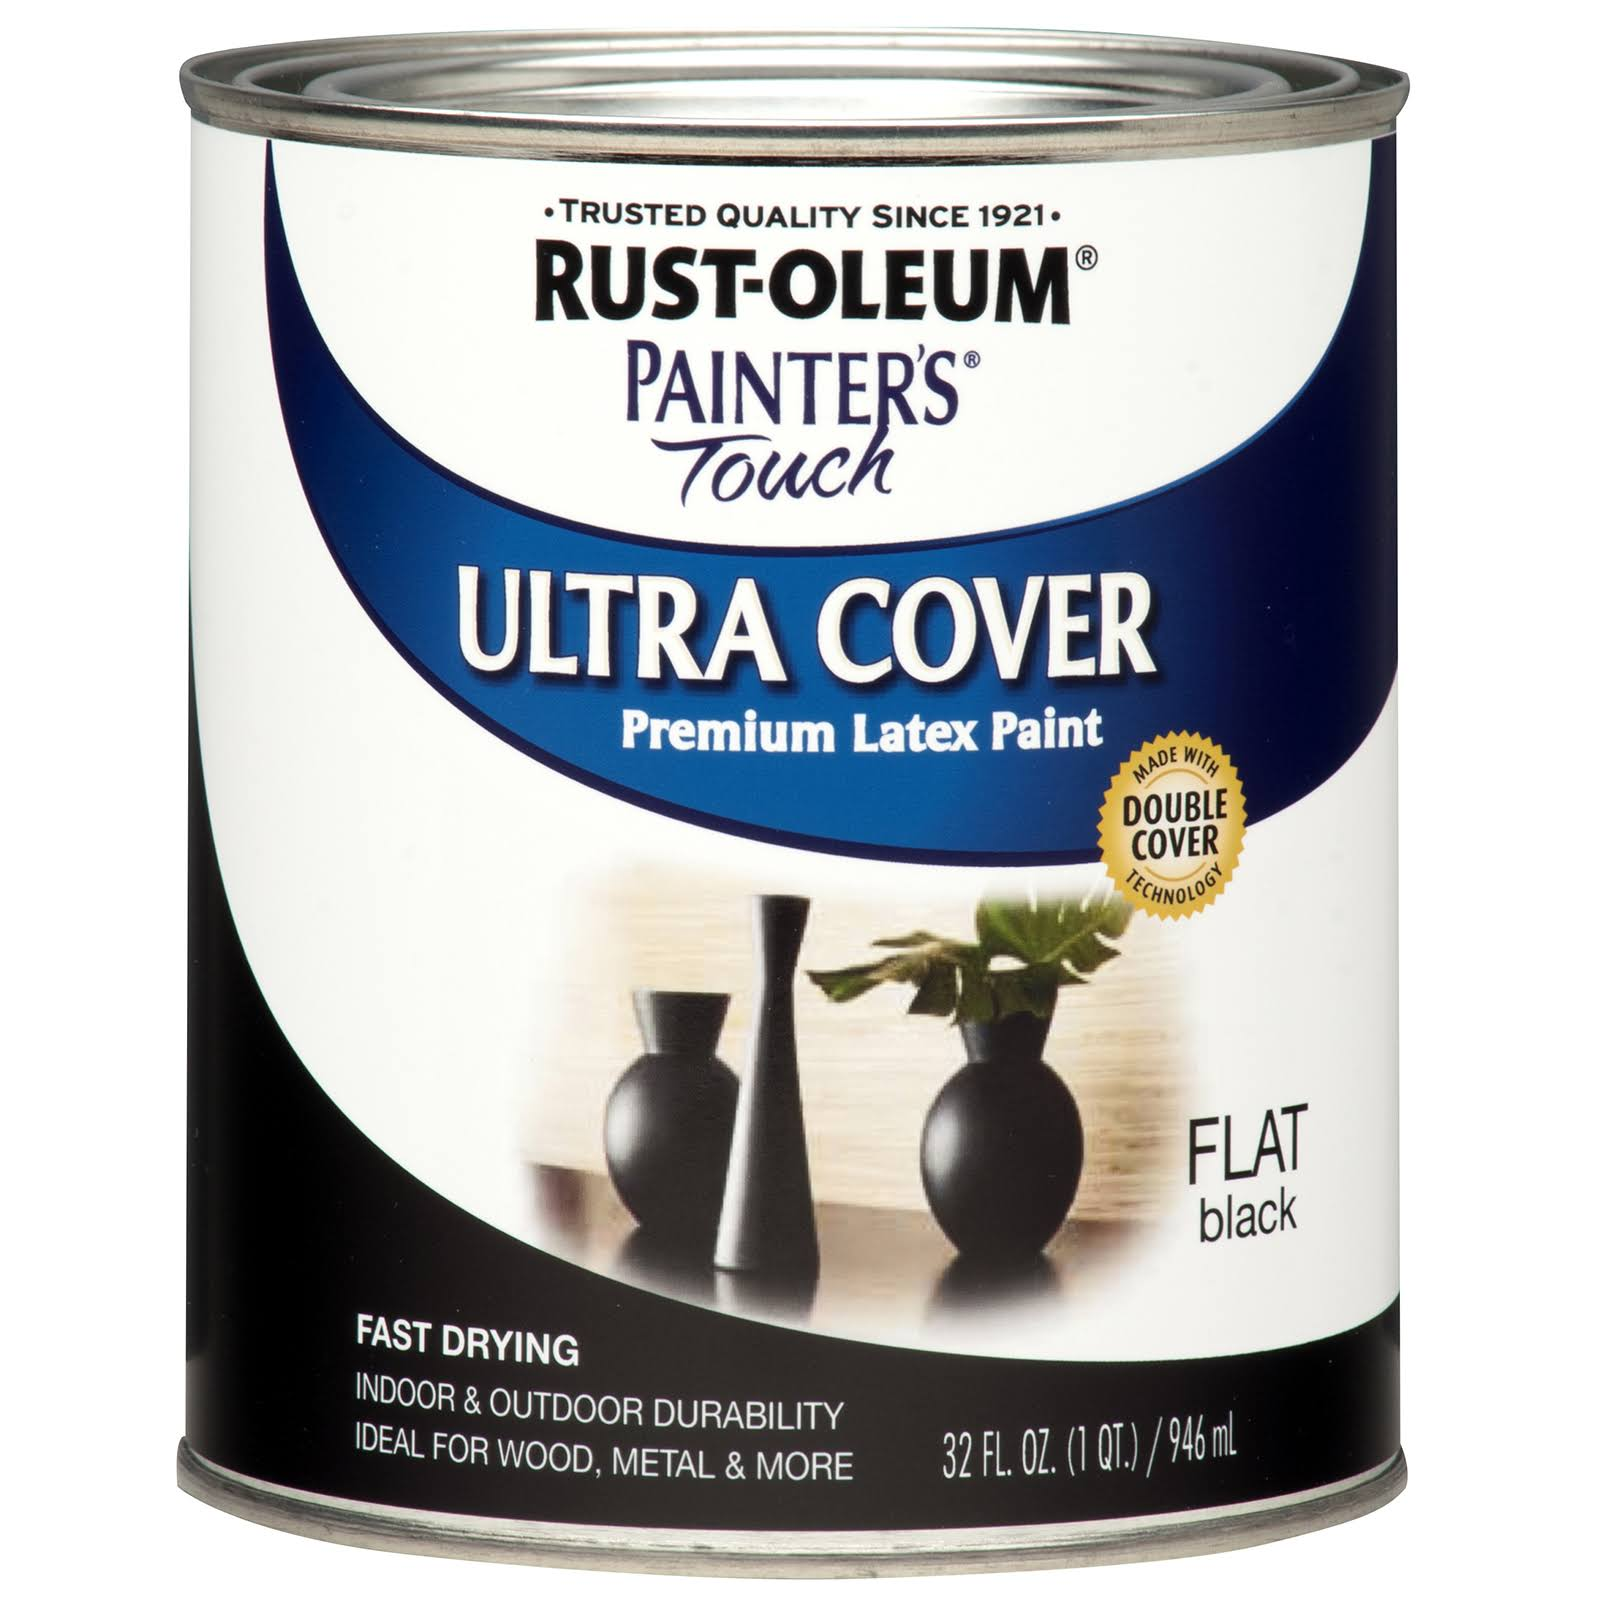 Rust-Oleum Painter's Touch Ultra Cover Latex Paint - Flat Black